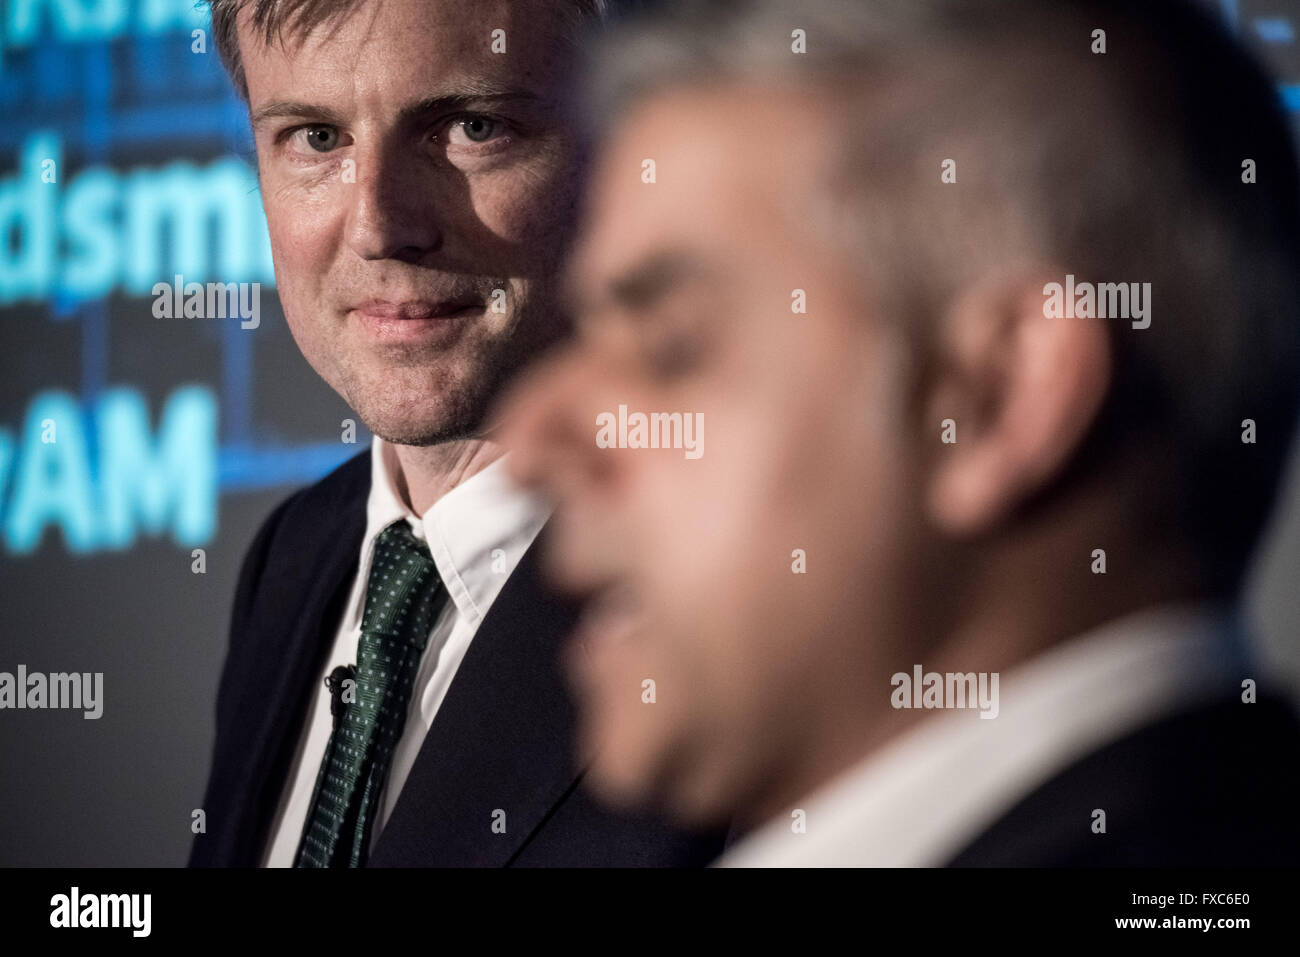 London, UK. 12th April. London Mayoral Election Debate at The Institute of Directors with Conservative candidate - Stock Image